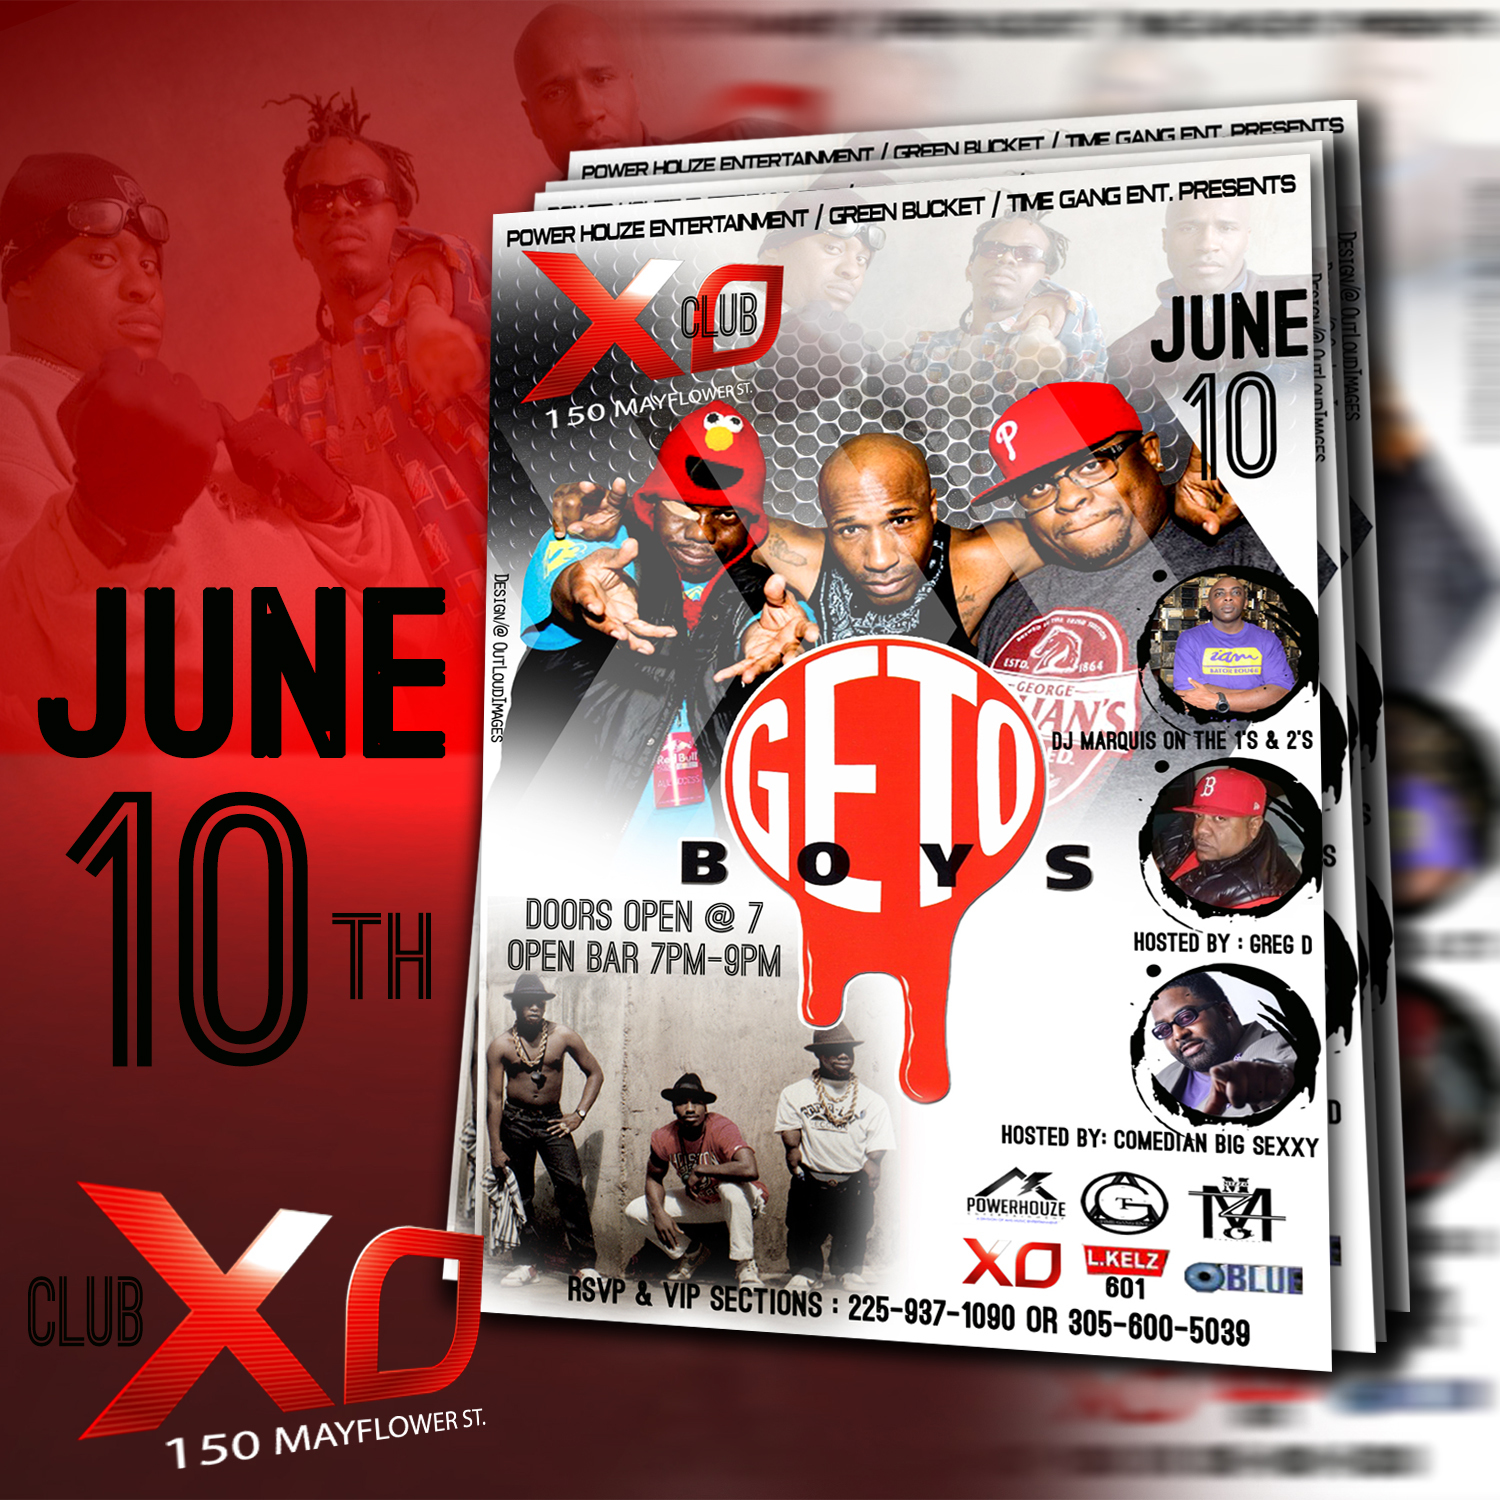 club xo event flyer